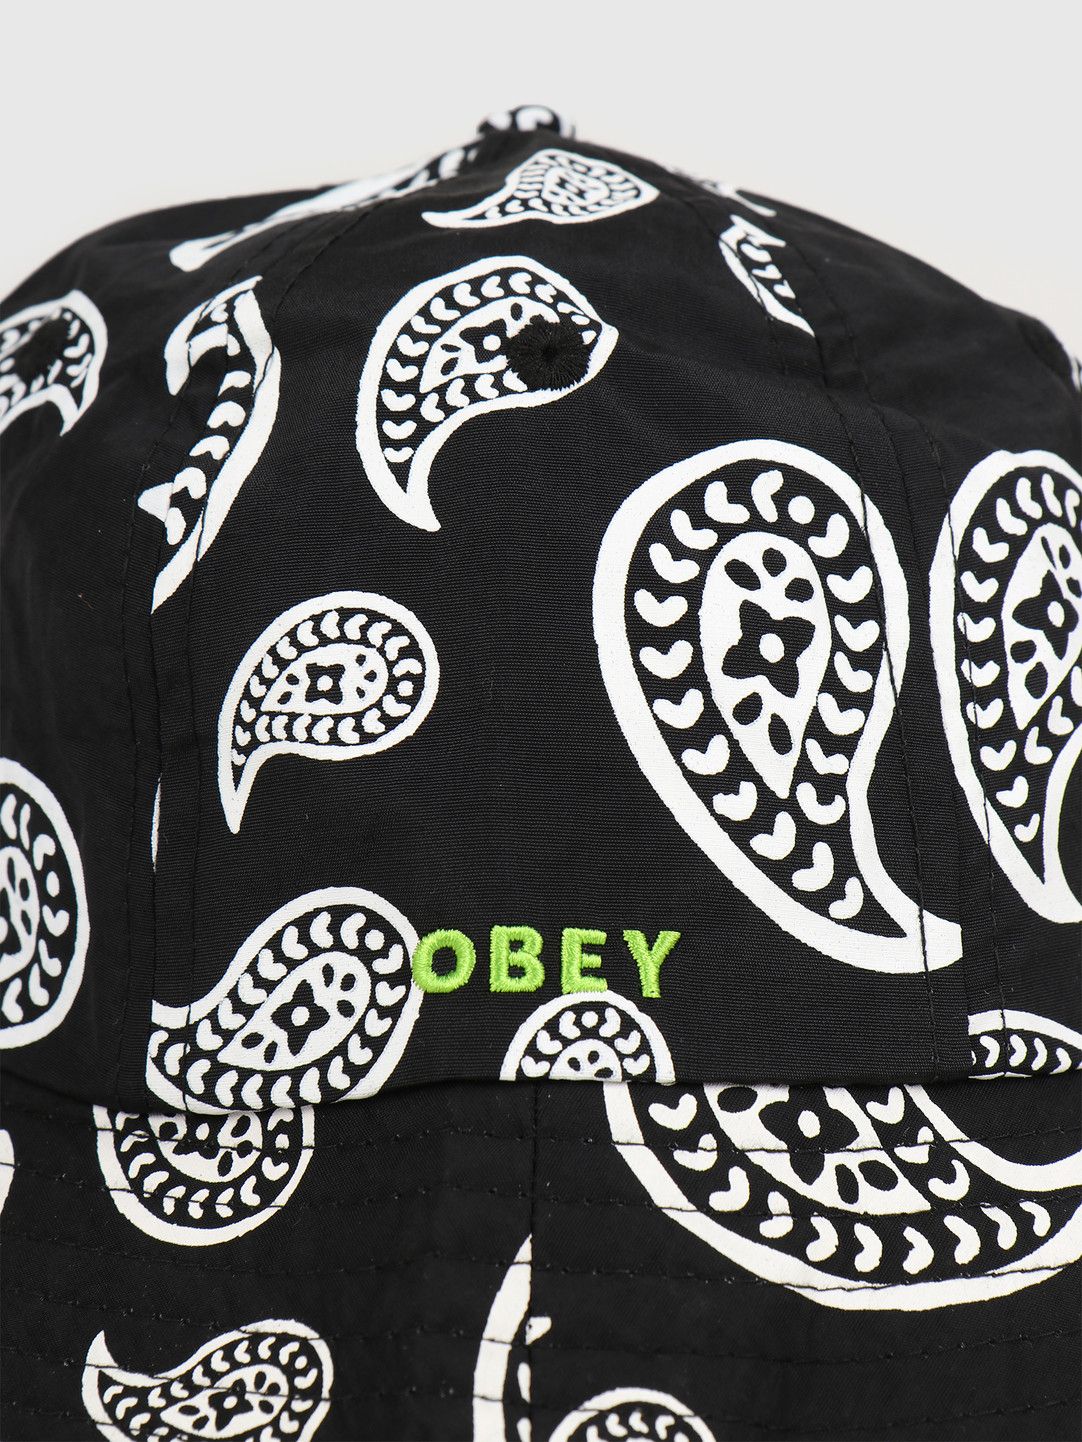 Obey Obey Julian bucket hat Black multi 100520035 BKM